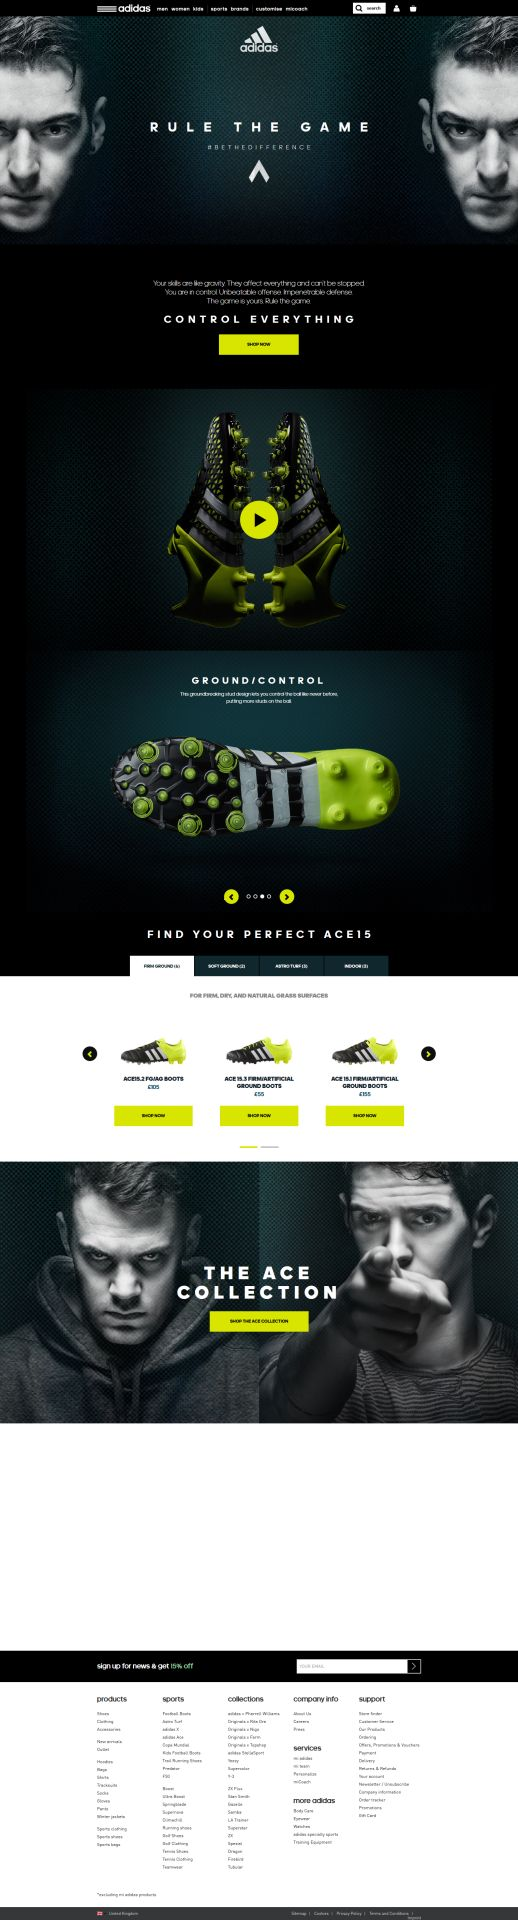 adidas ACE15 football boots | Control everything